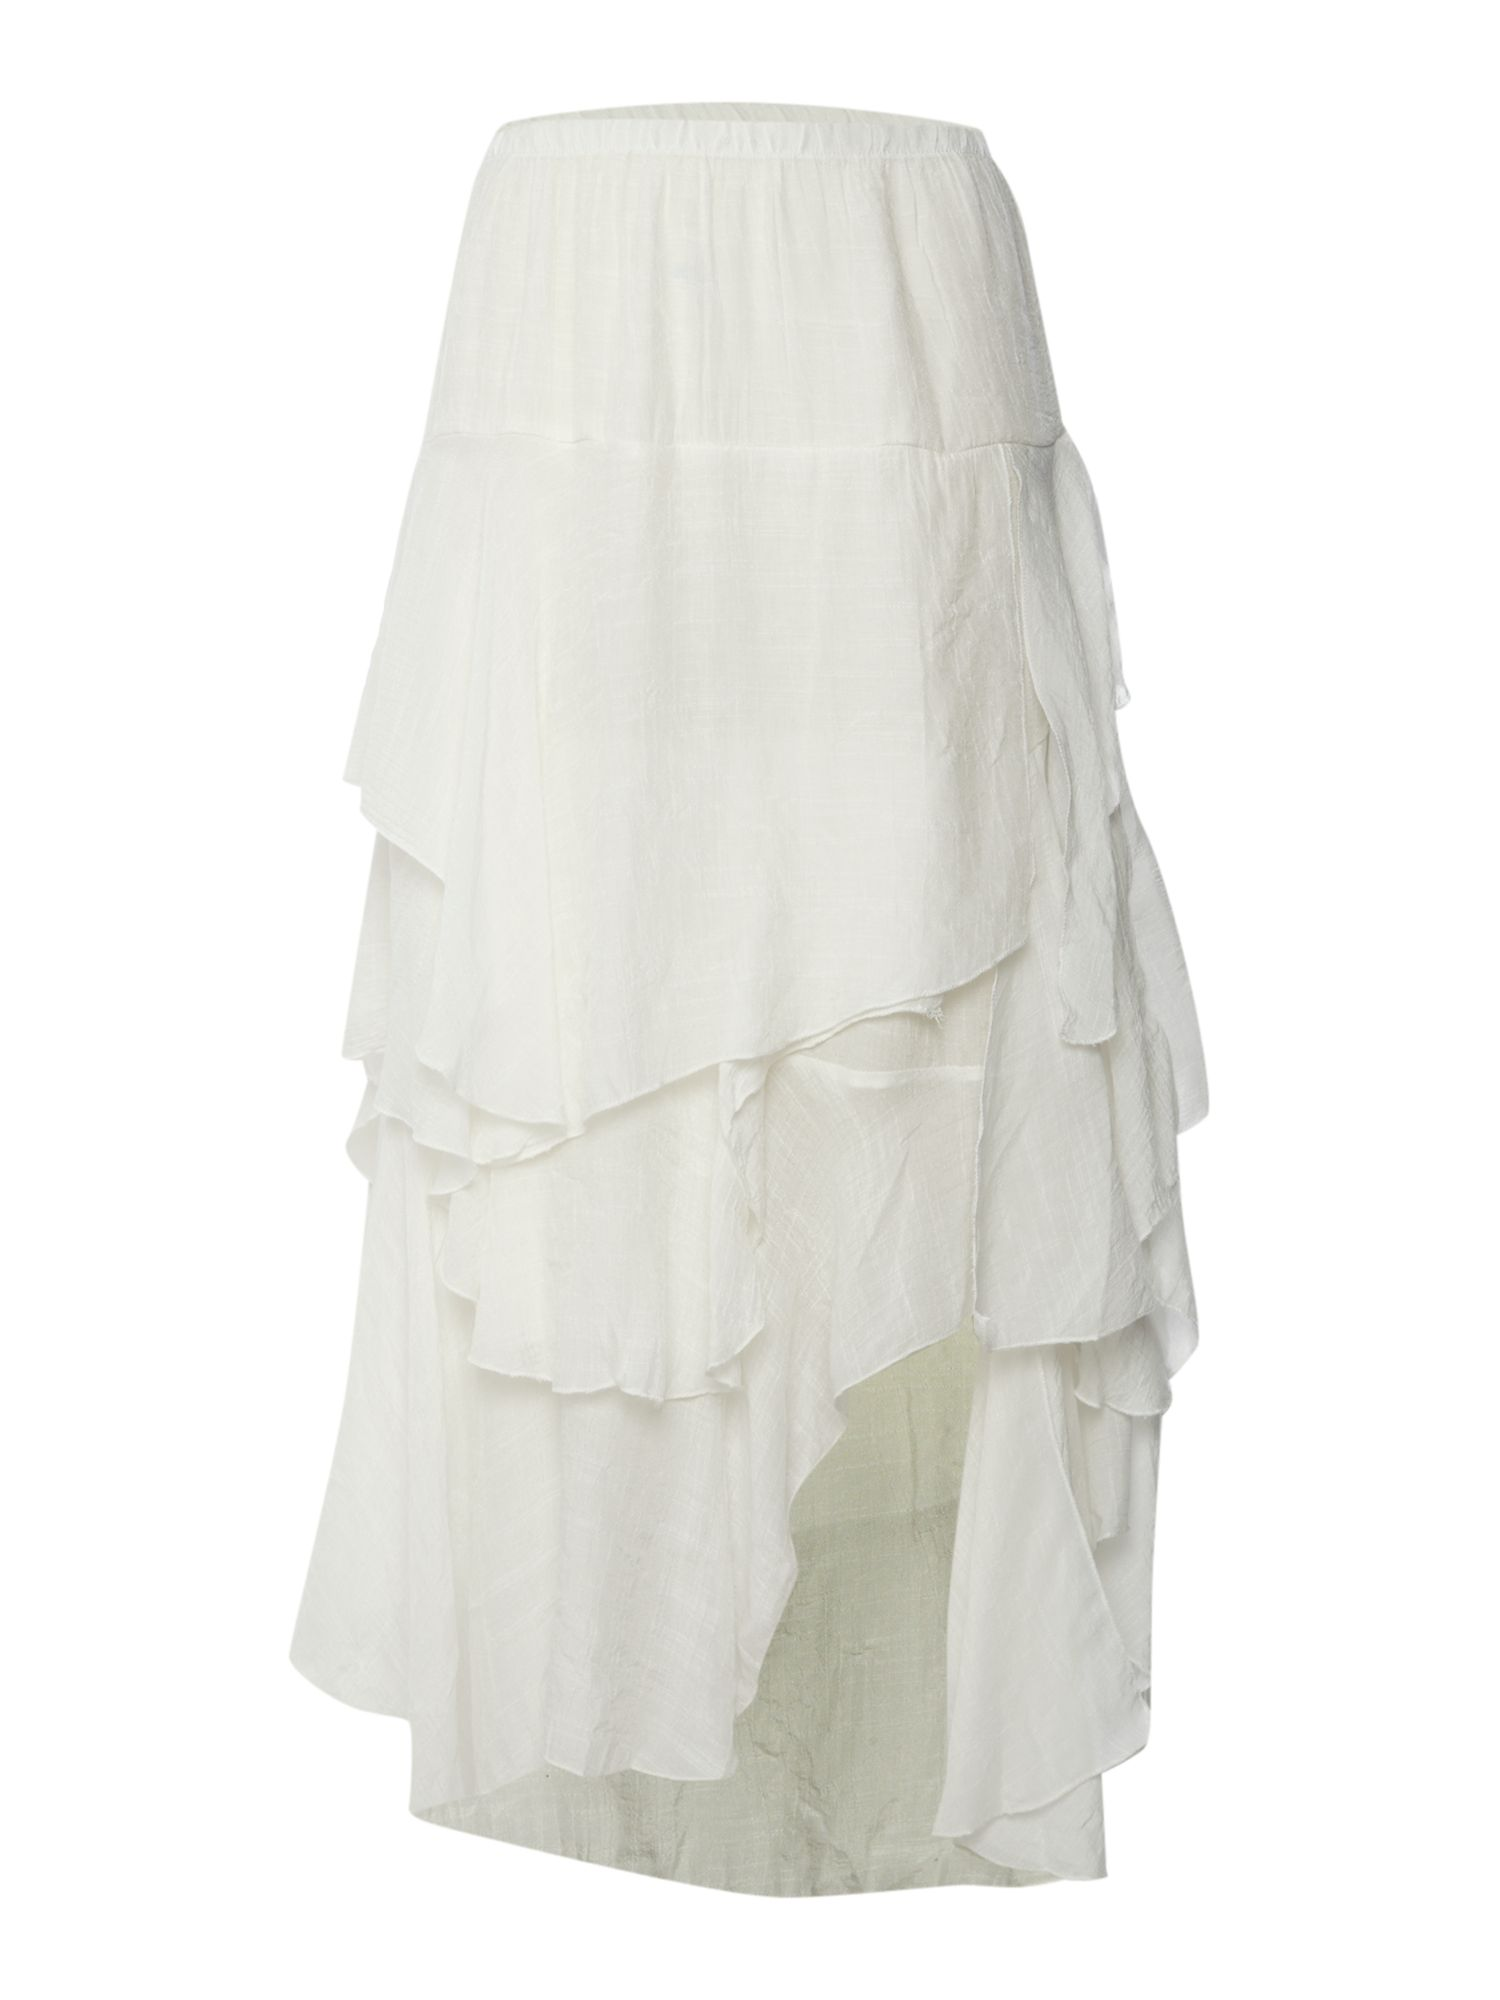 Maxi skirt with ruffled tiers